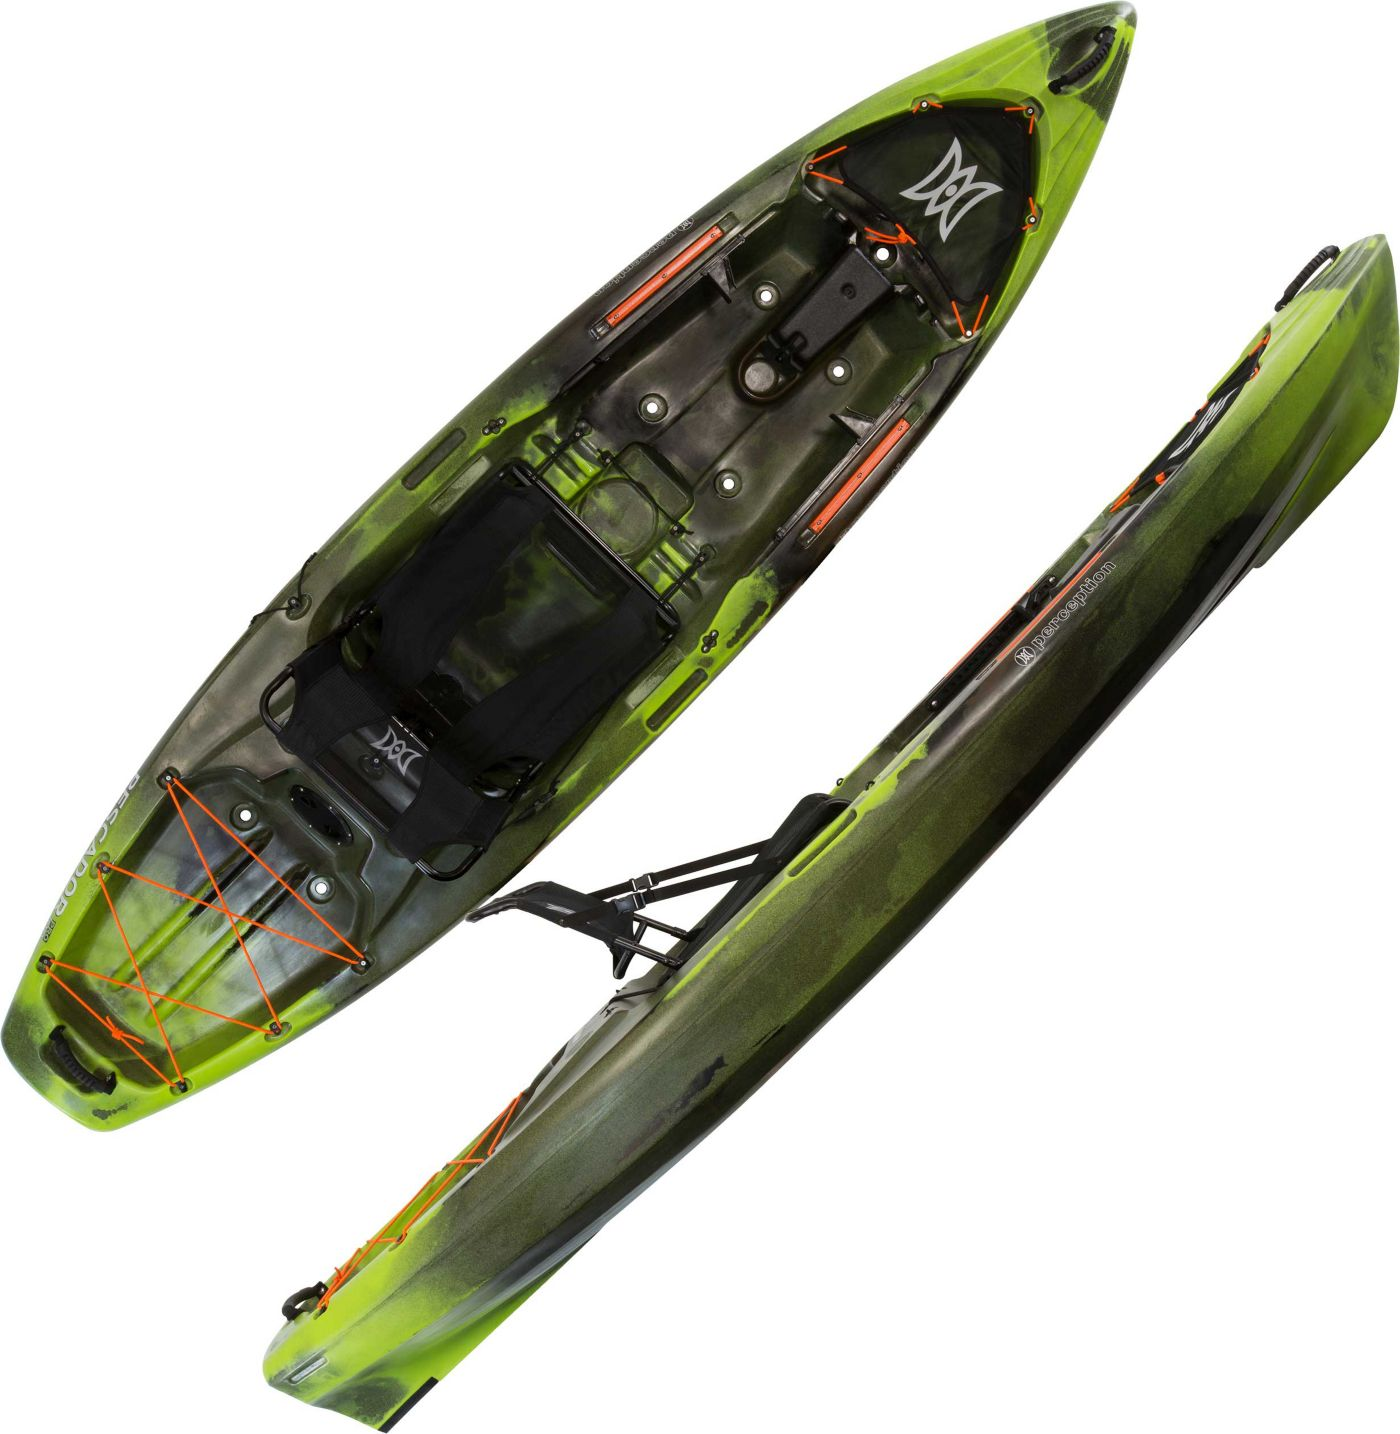 Perception Pescador Pro 10.0 Angler Kayak